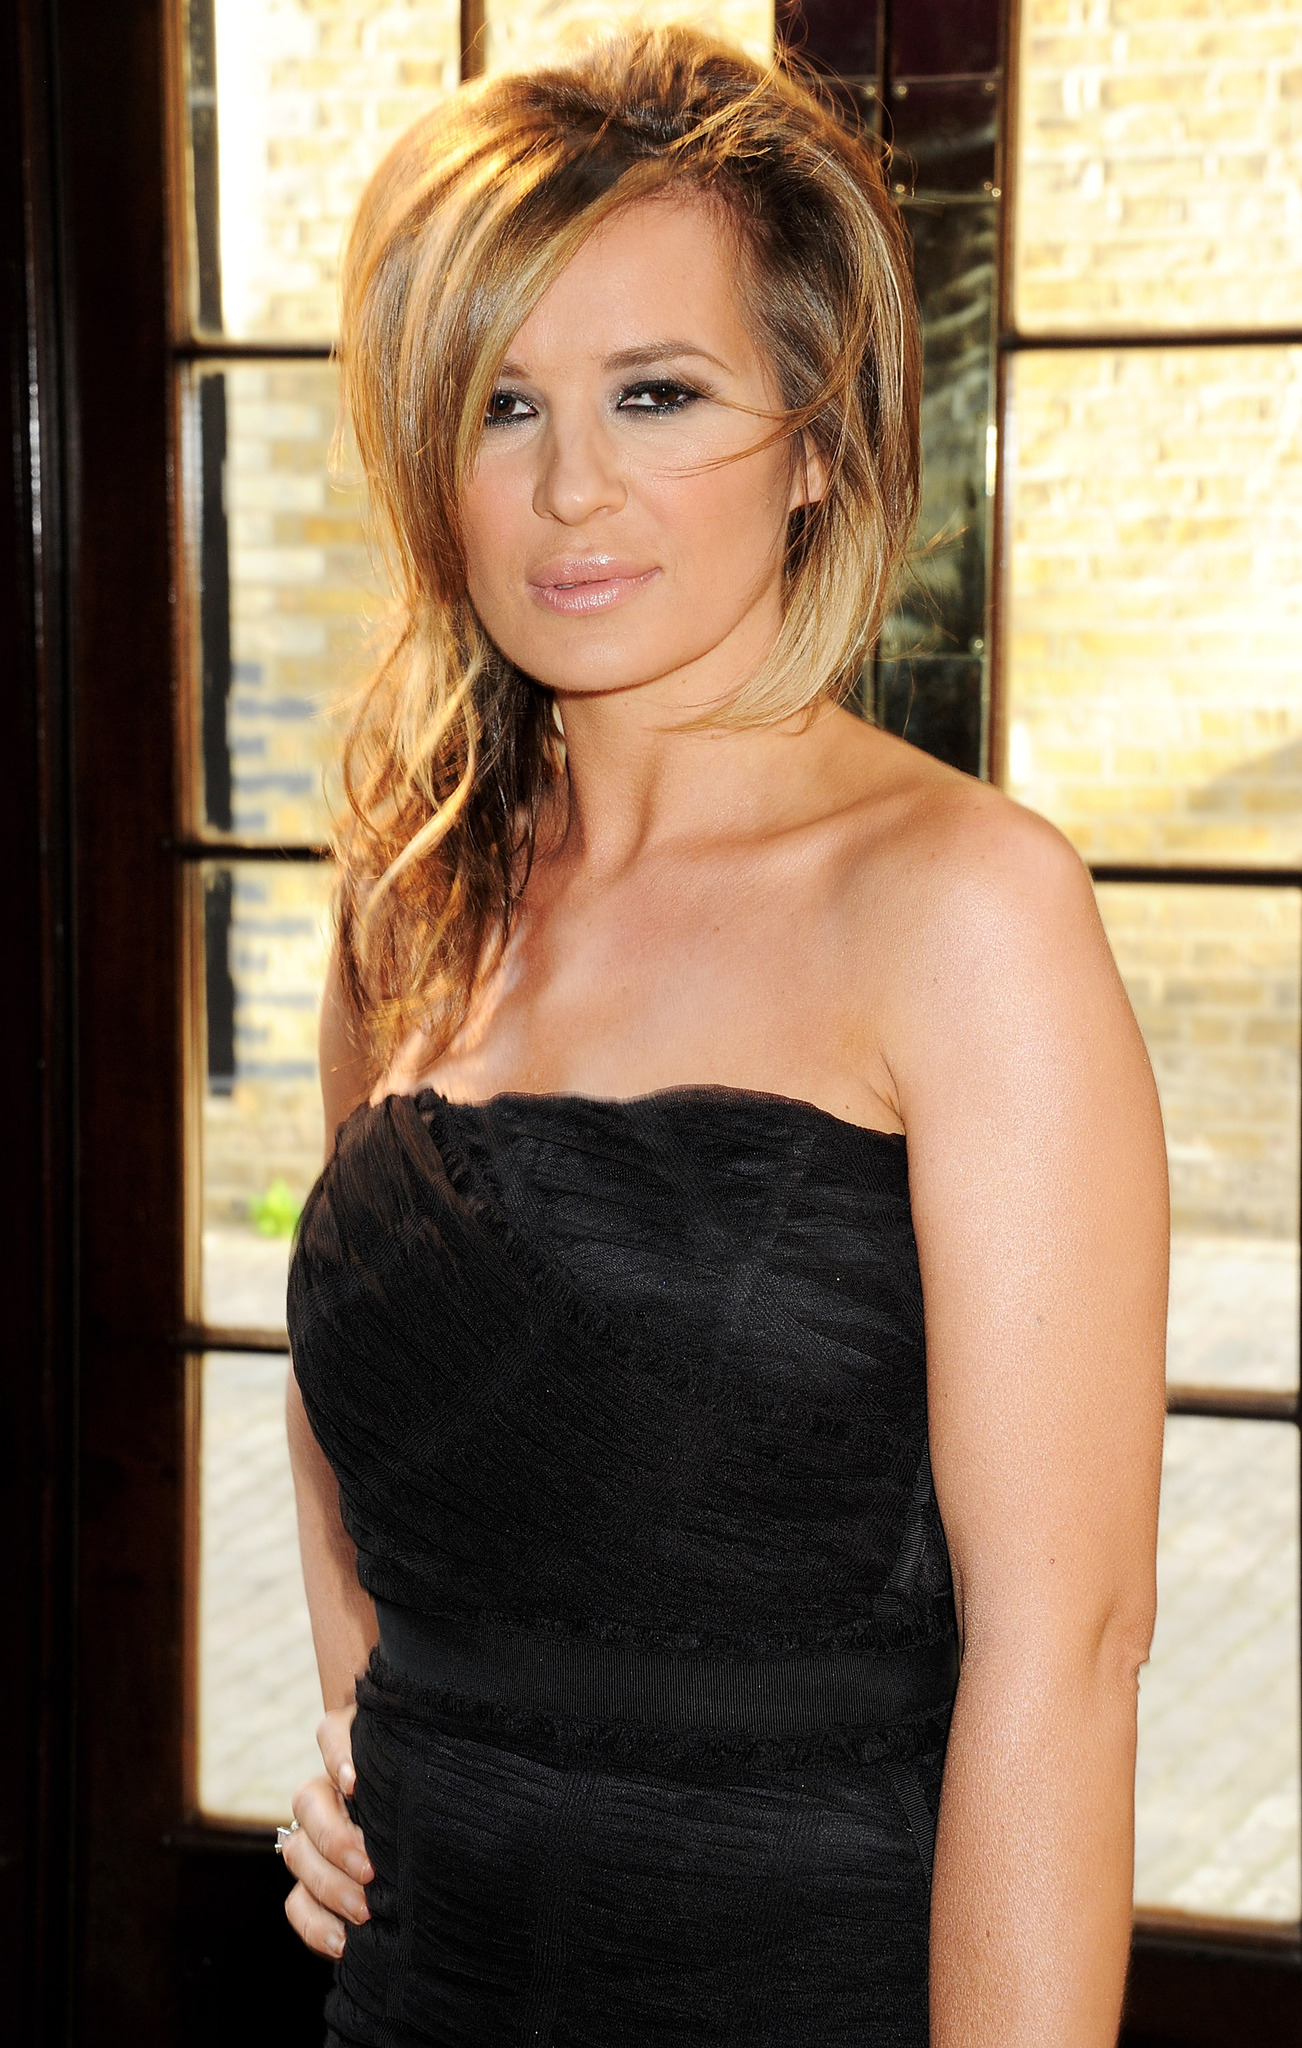 Kierston Wareing Nude Photos 44